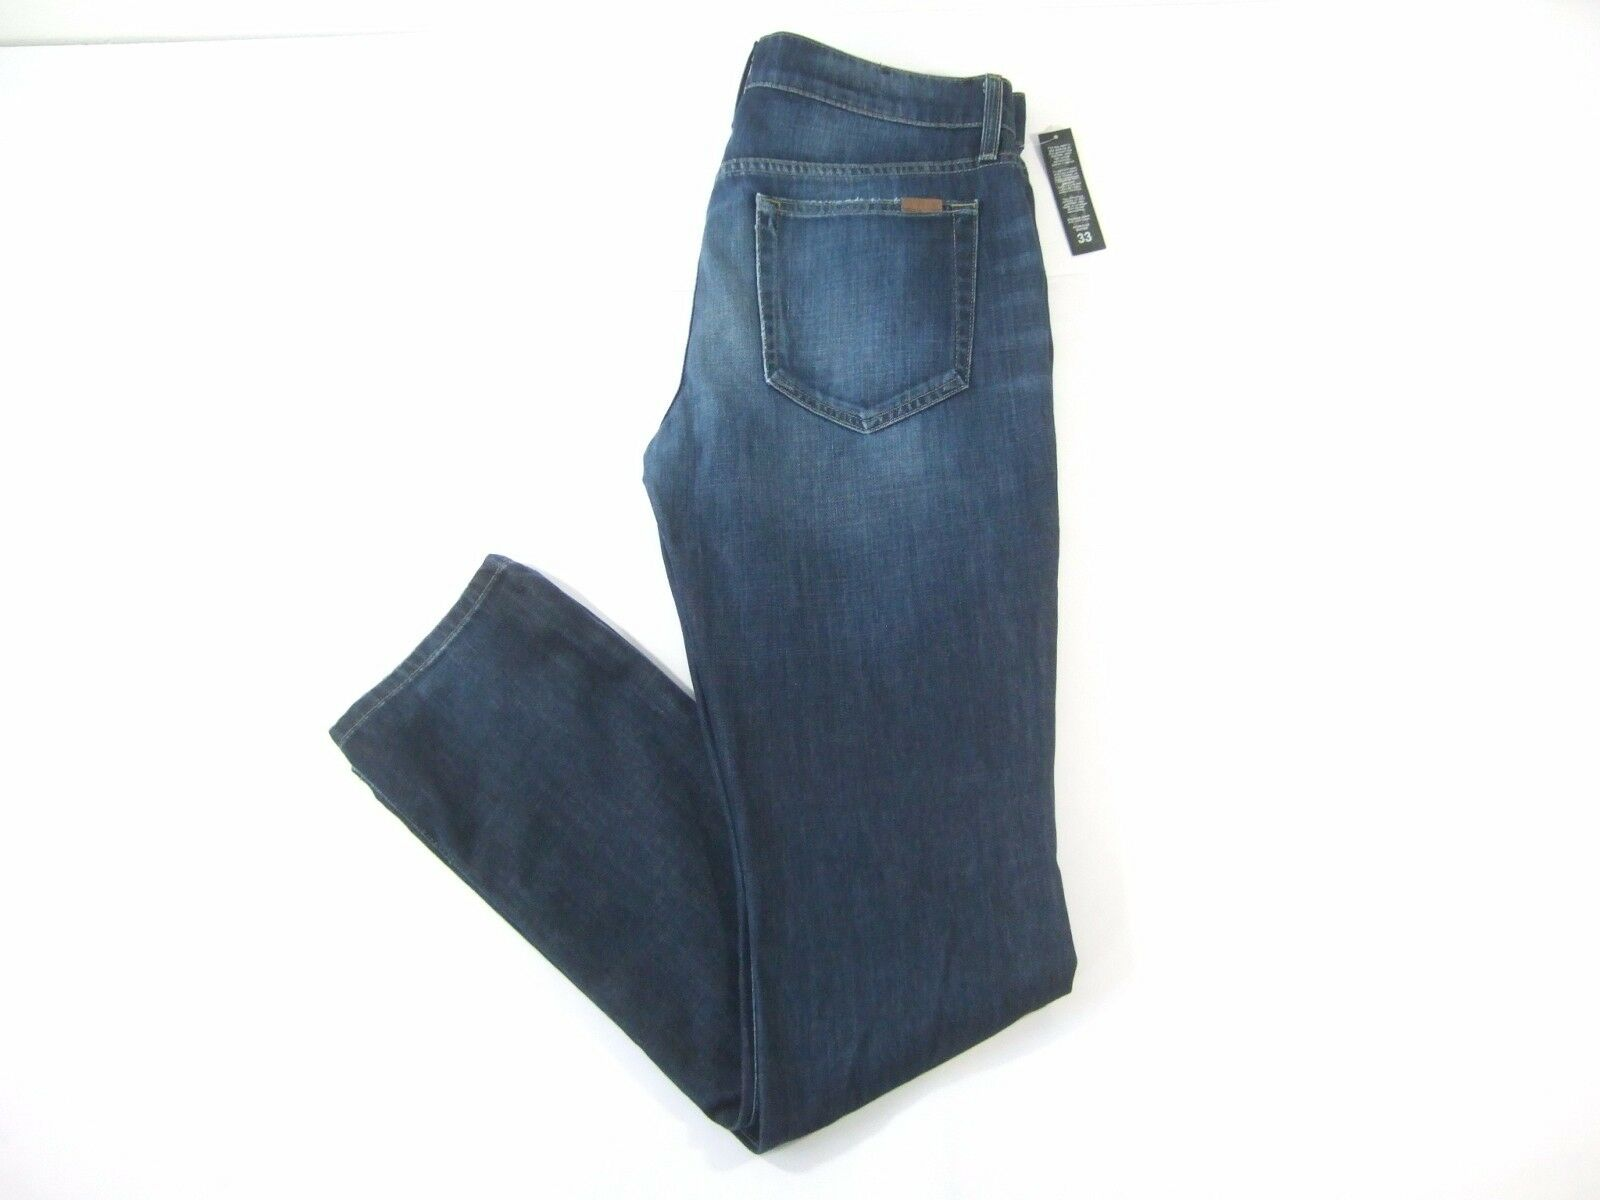 JOES JEANS MACER DISTRESSED DARK blueE 33 STRAIGHT NARROW FIT JEANS MENS NWT NEW